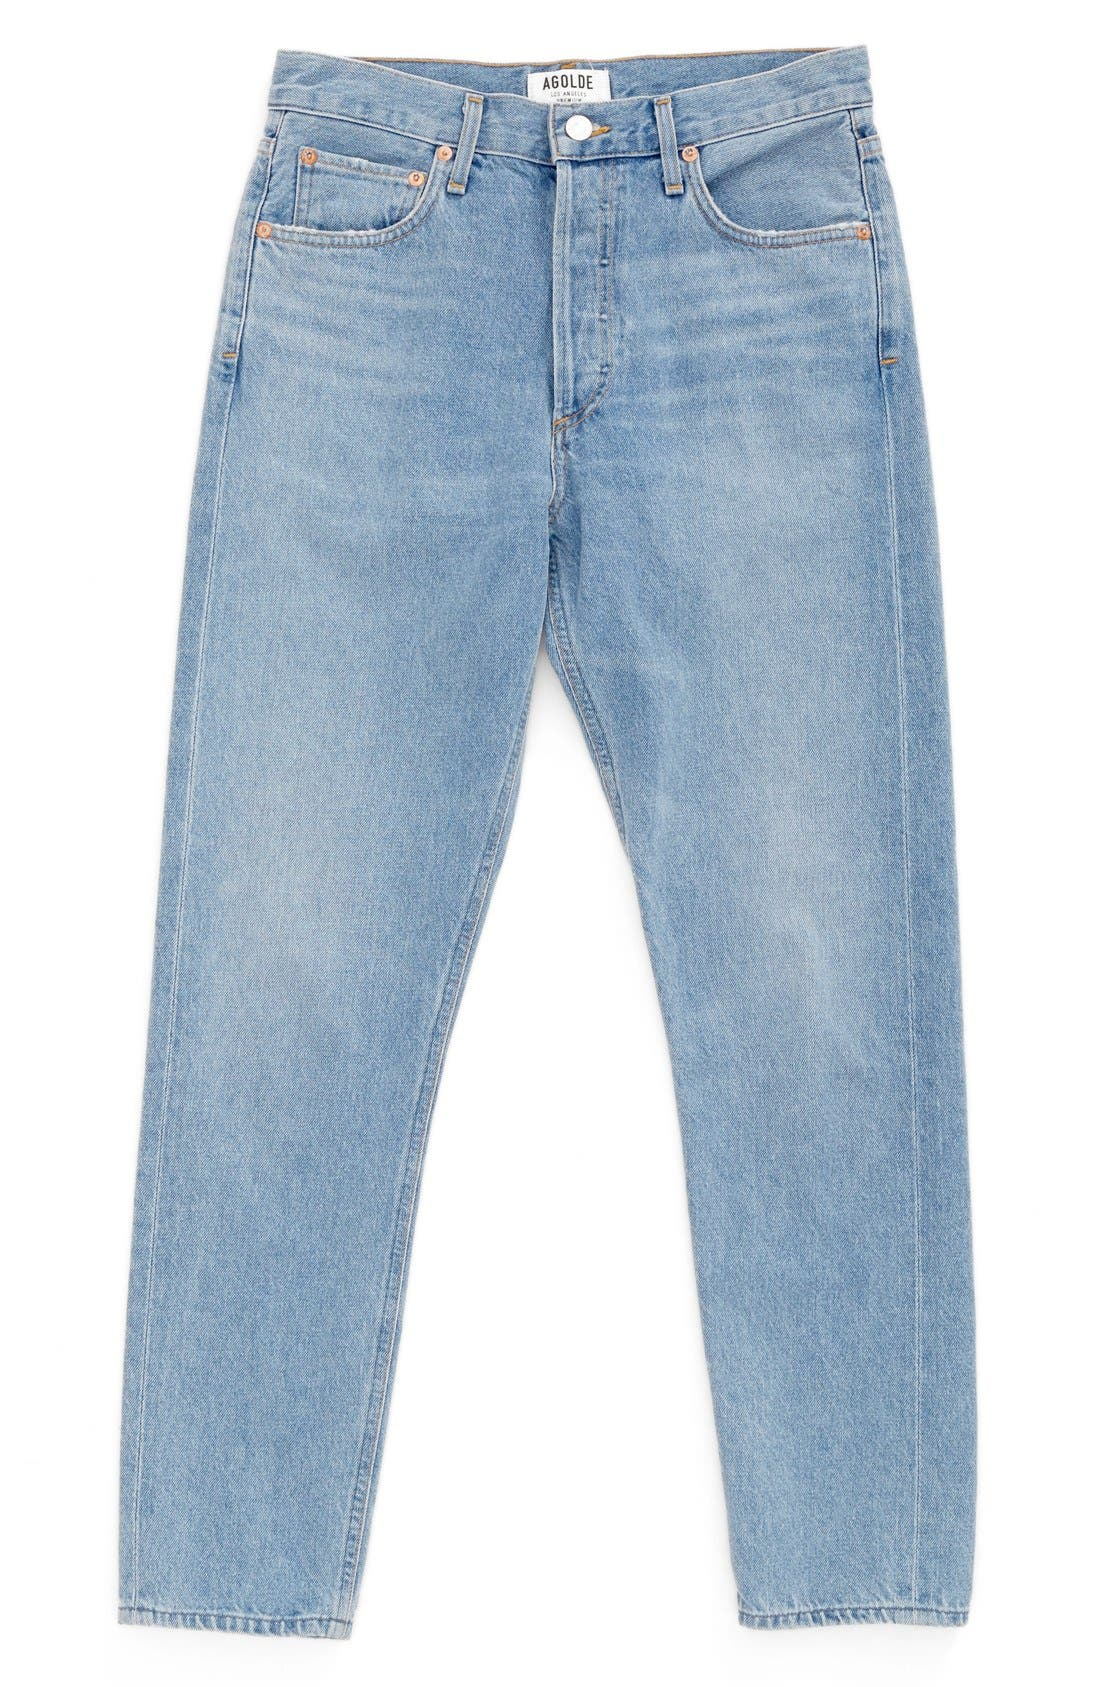 AGOLDE Jamie High Rise Classic Jeans (Women)